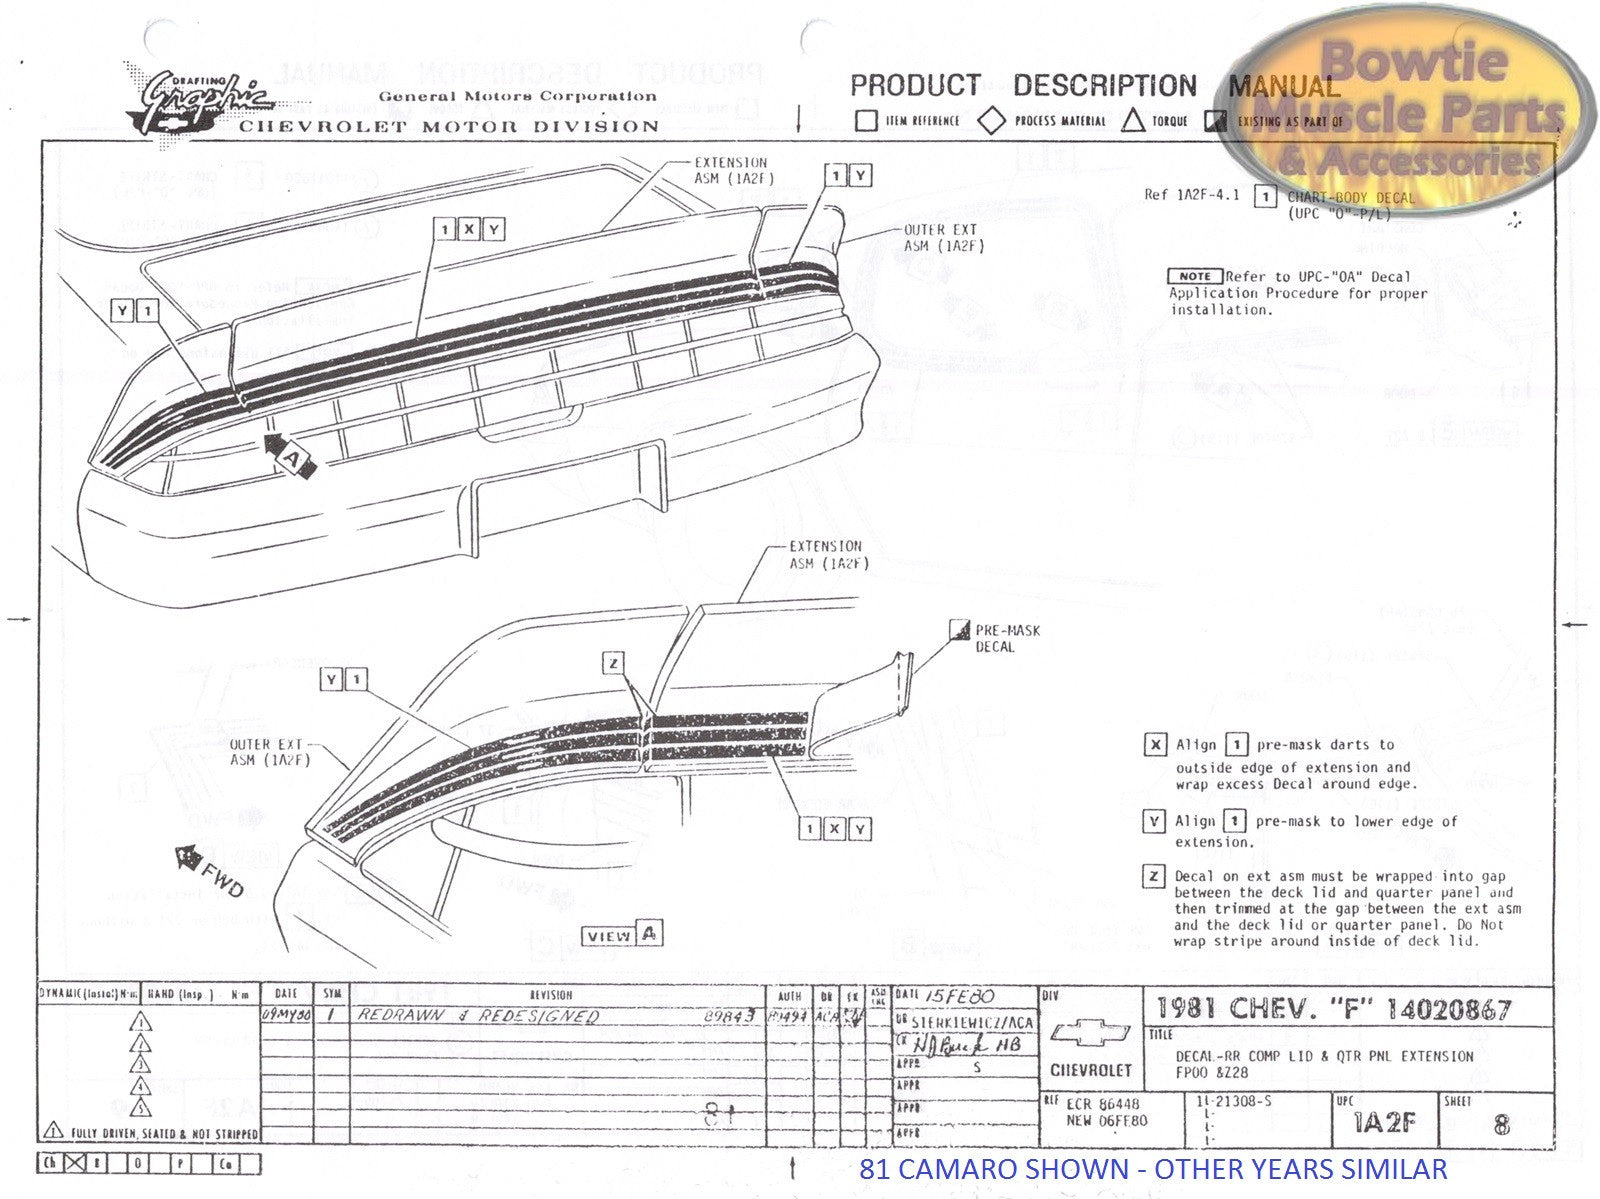 1971 71 Camaro Factory Assembly Manual Z28 Ss Rs 426 Pages 2002 Cooling System Diagram Wiring Schematic